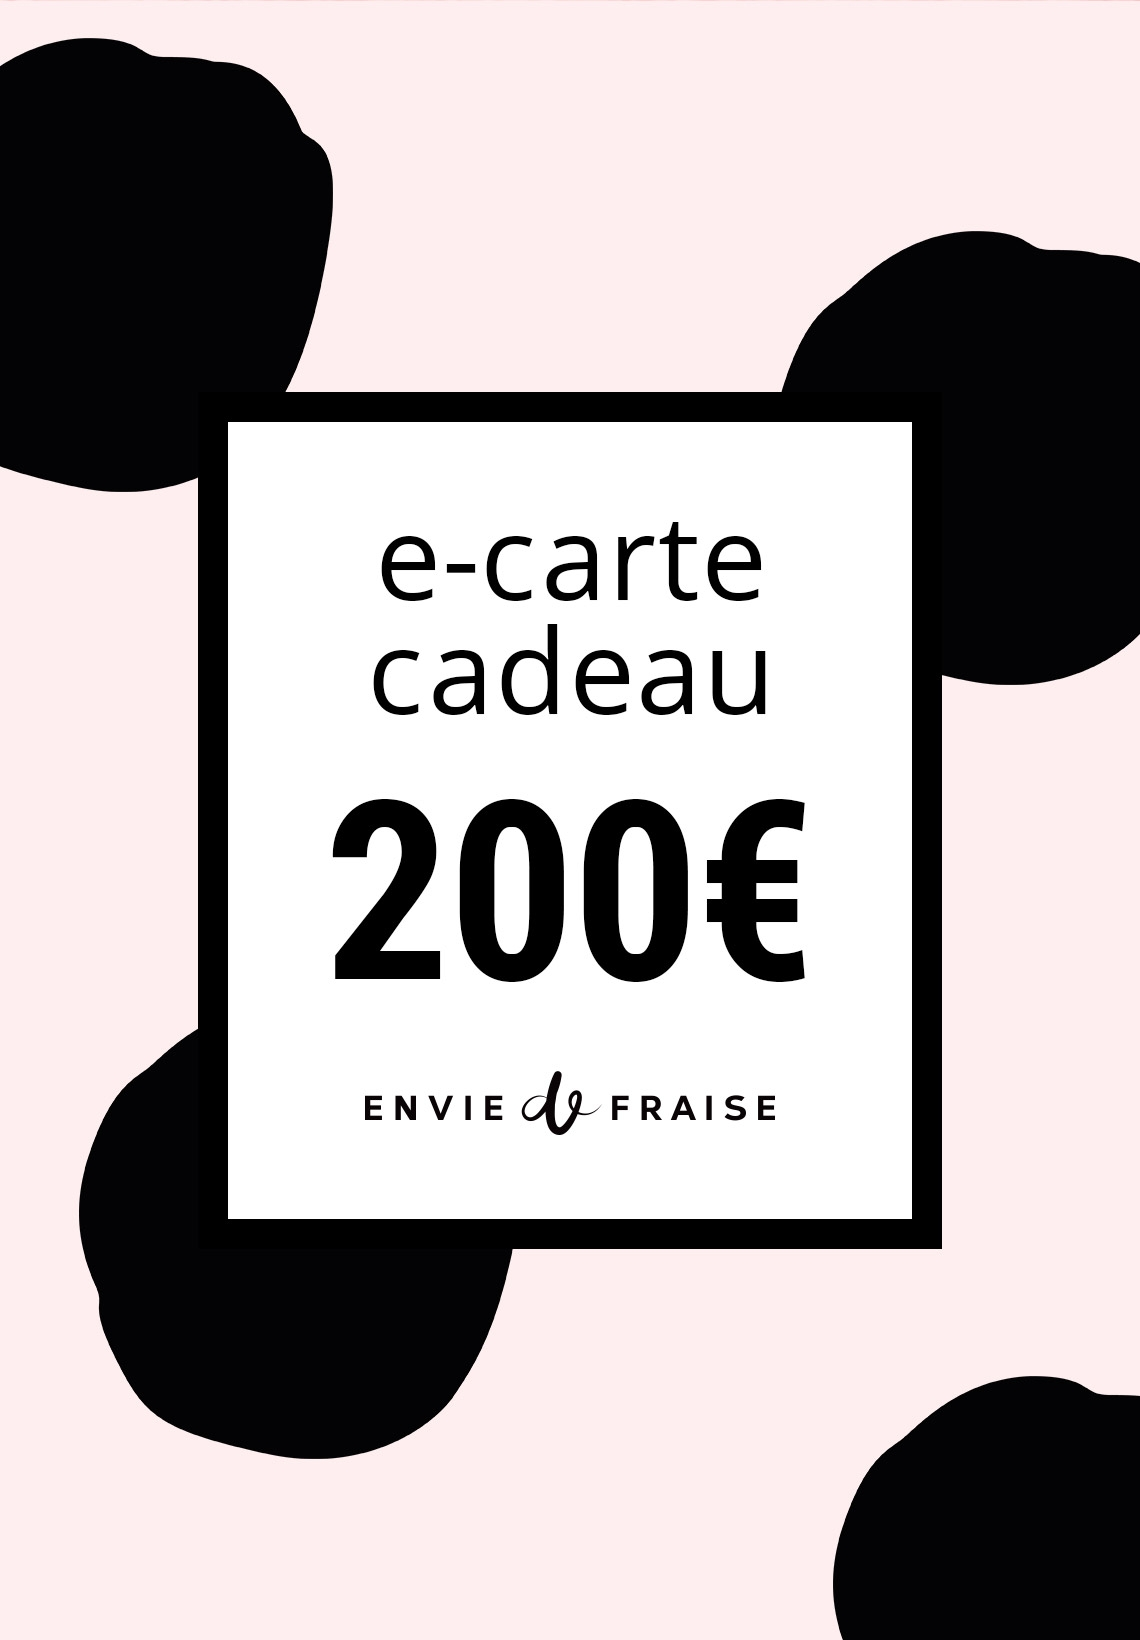 carte cadeau 200 euros sur le site envie de fraise. Black Bedroom Furniture Sets. Home Design Ideas